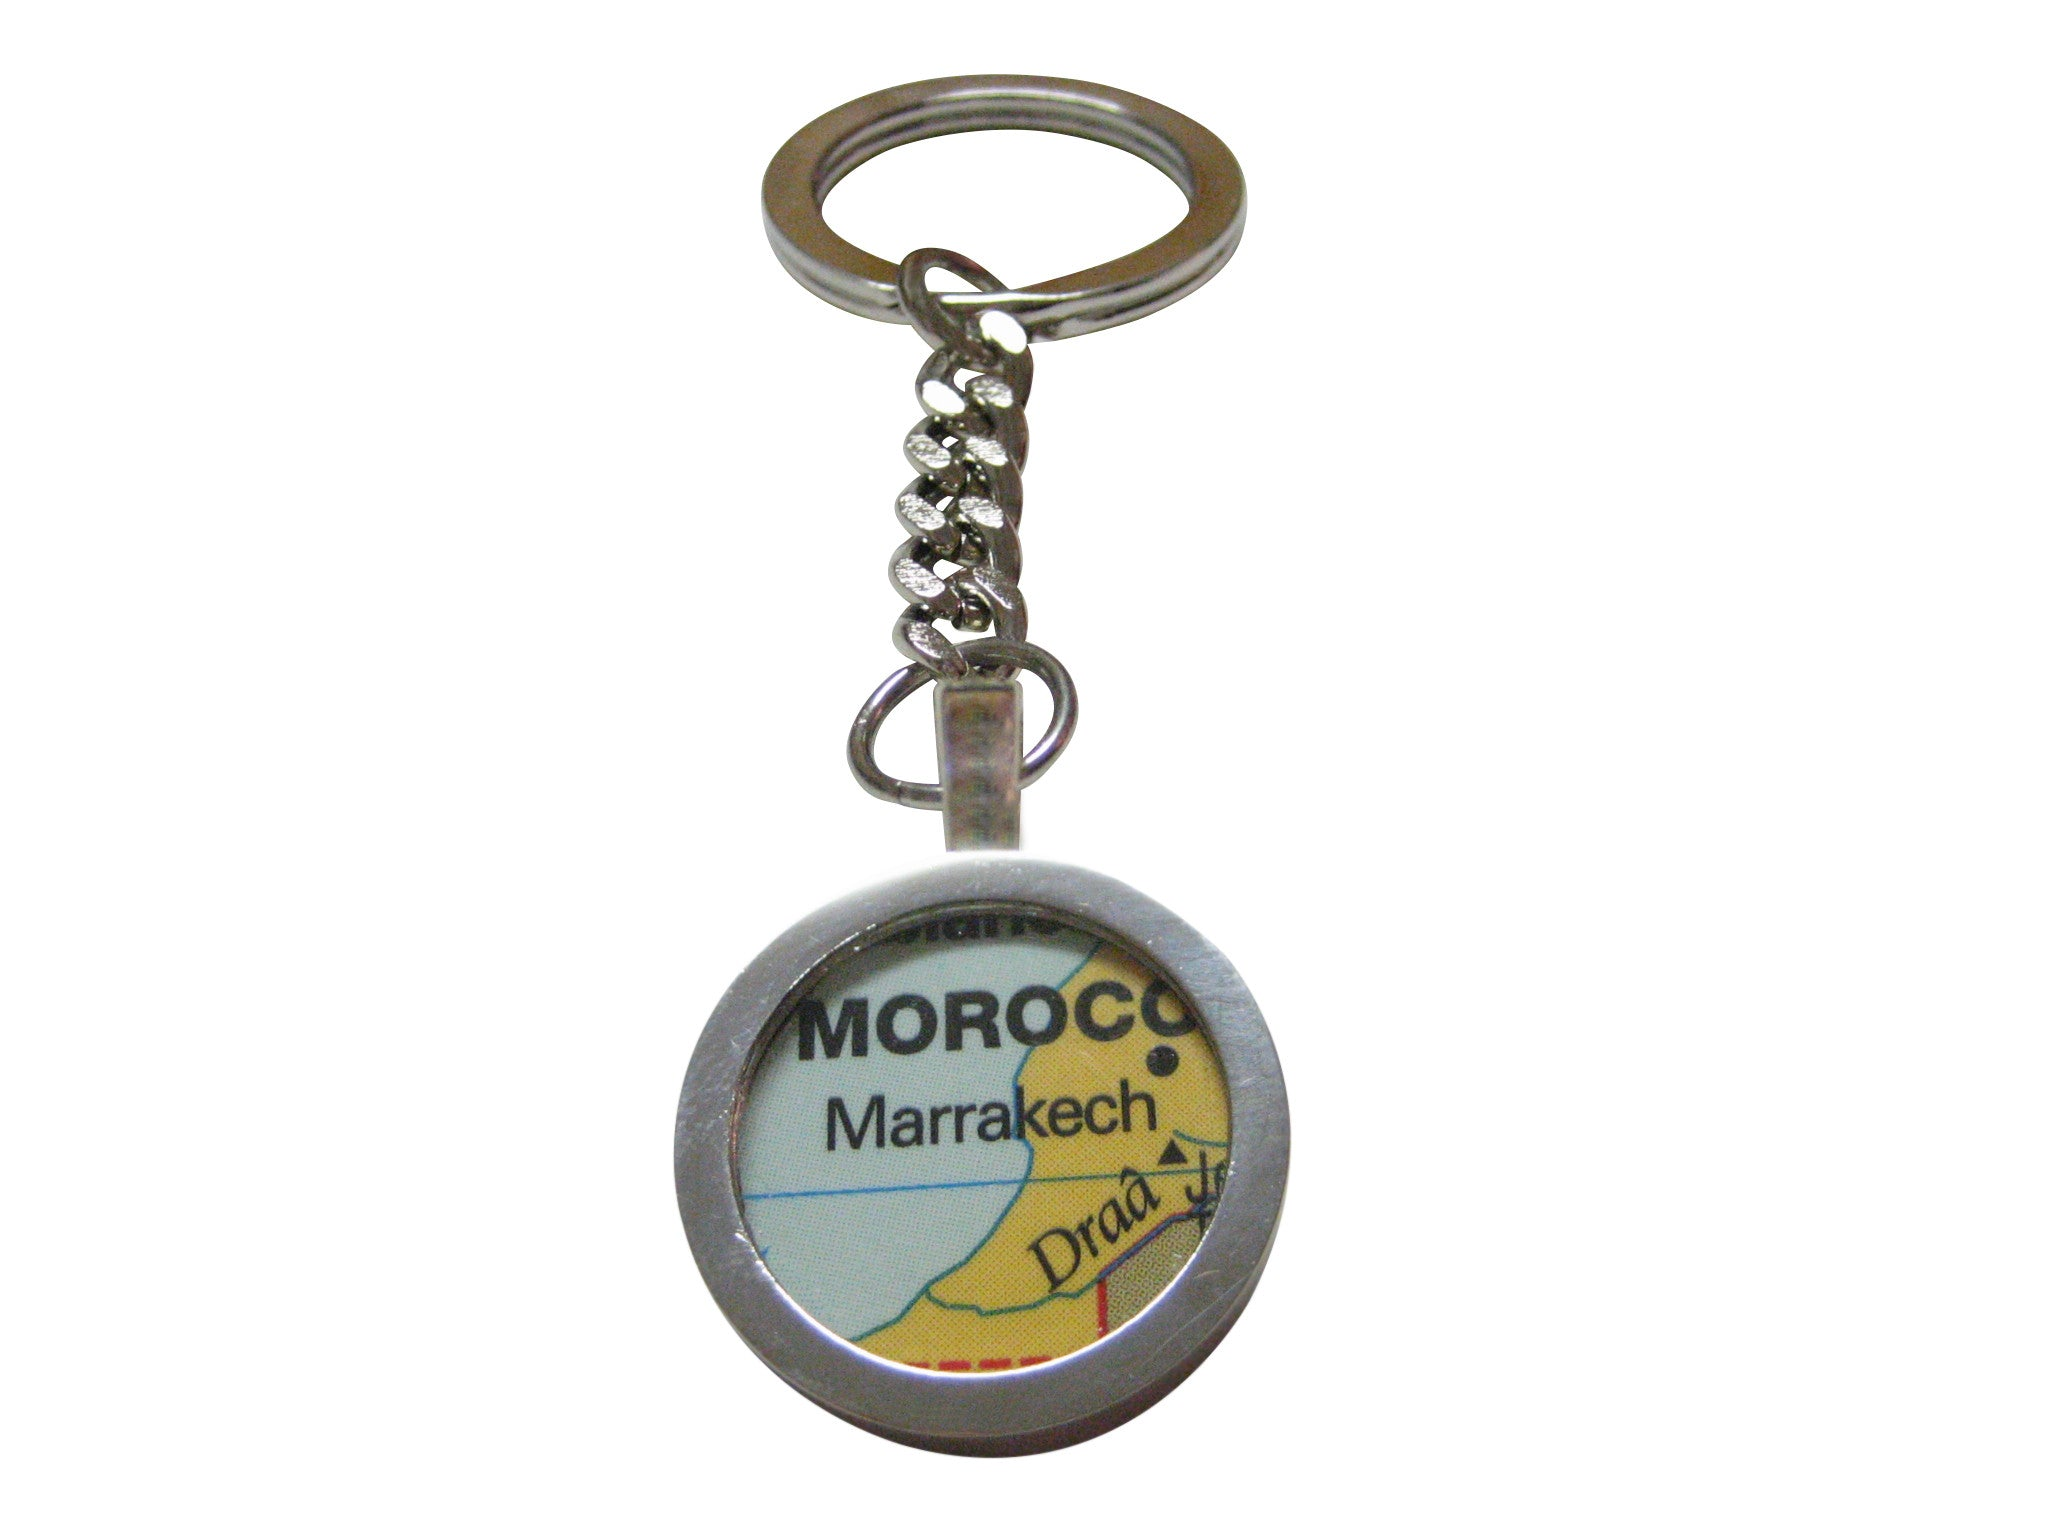 Marrakech Morocco Map Pendant Key Chain